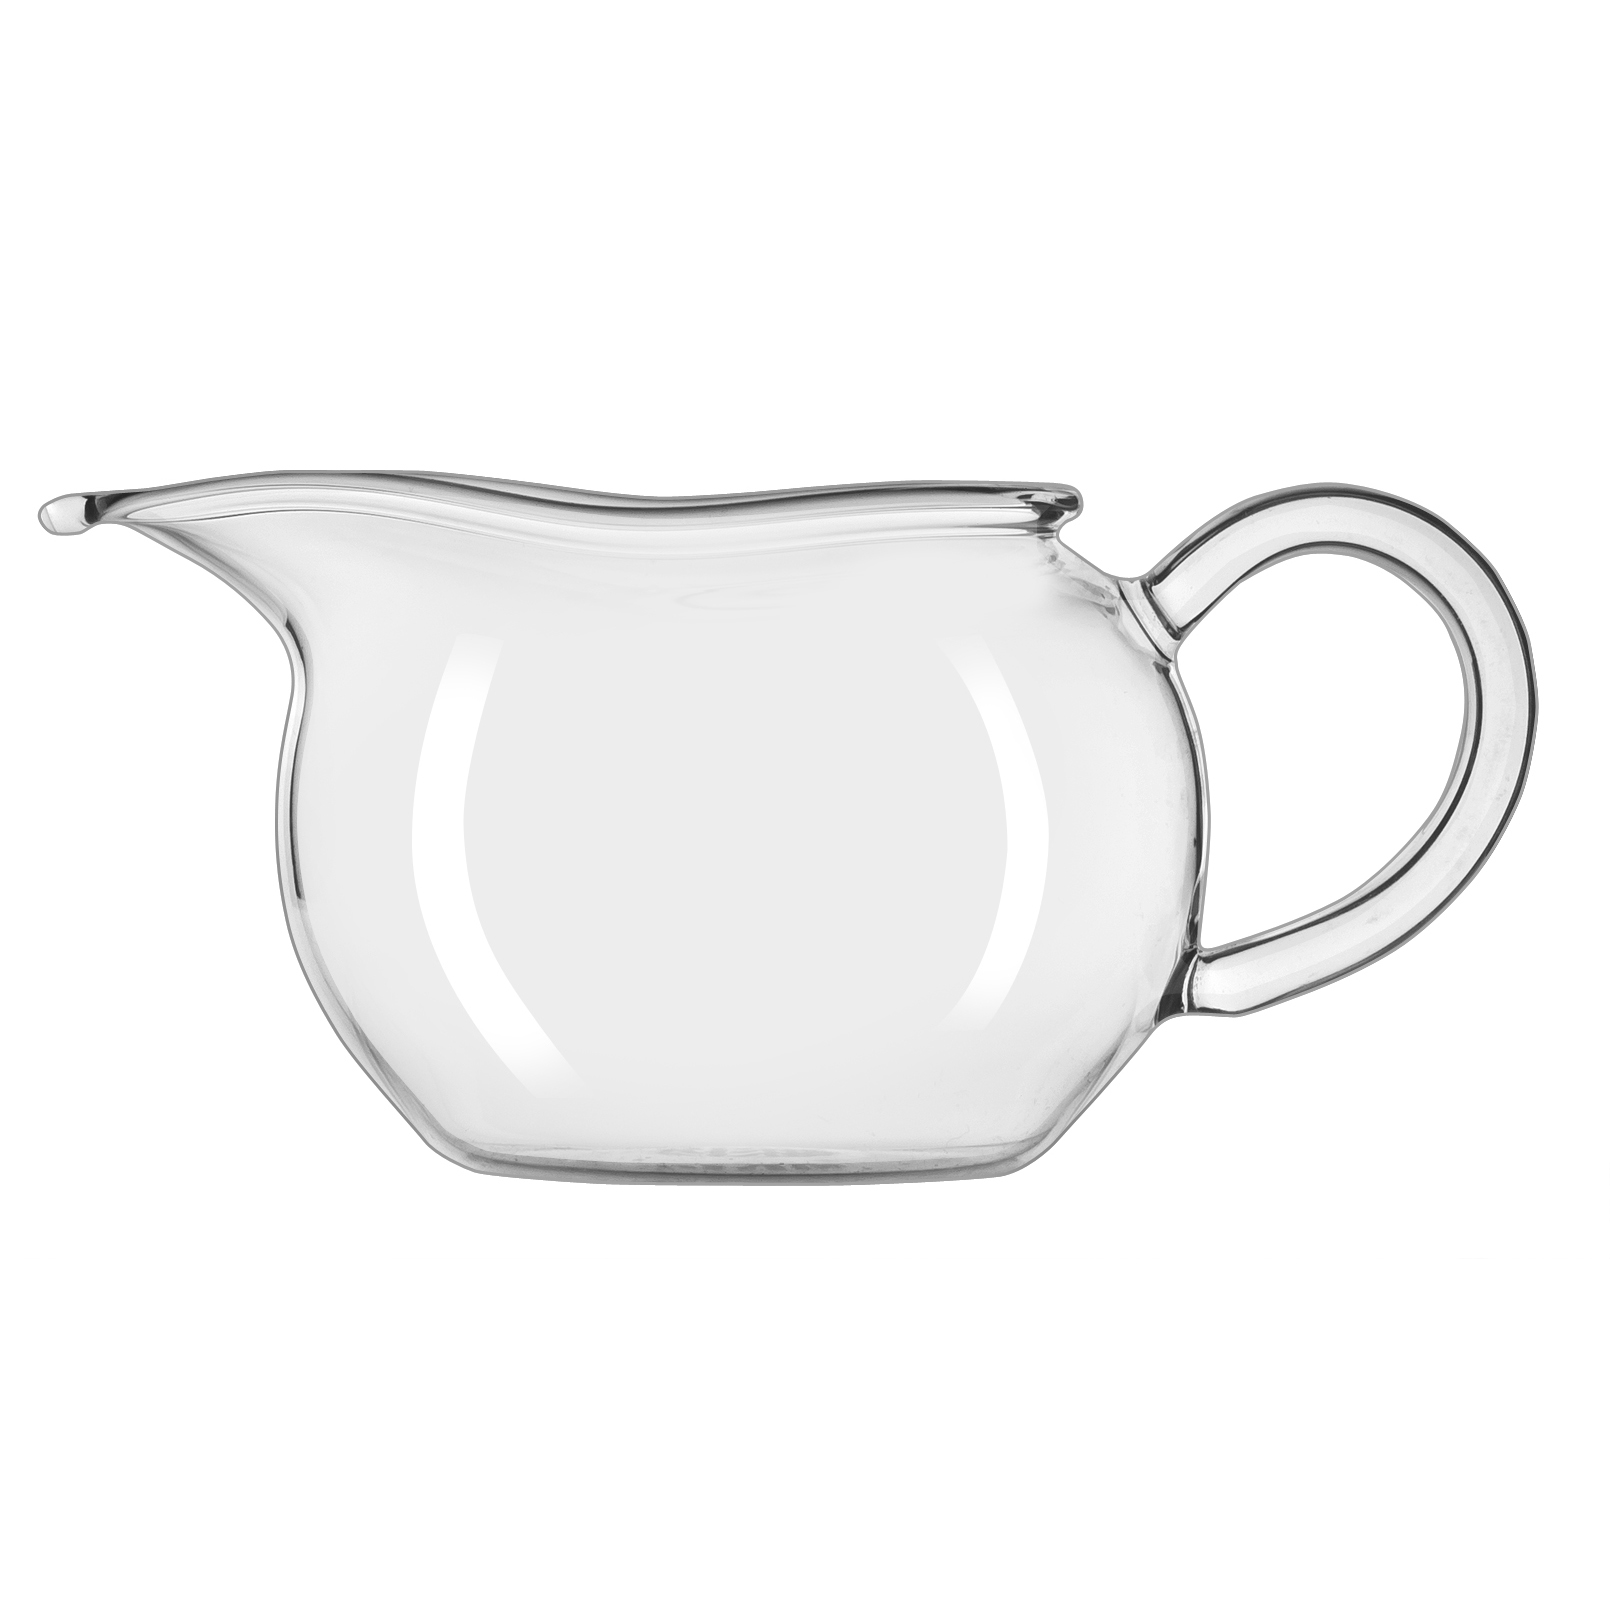 Libbey Glass VS80800 creamer, glass